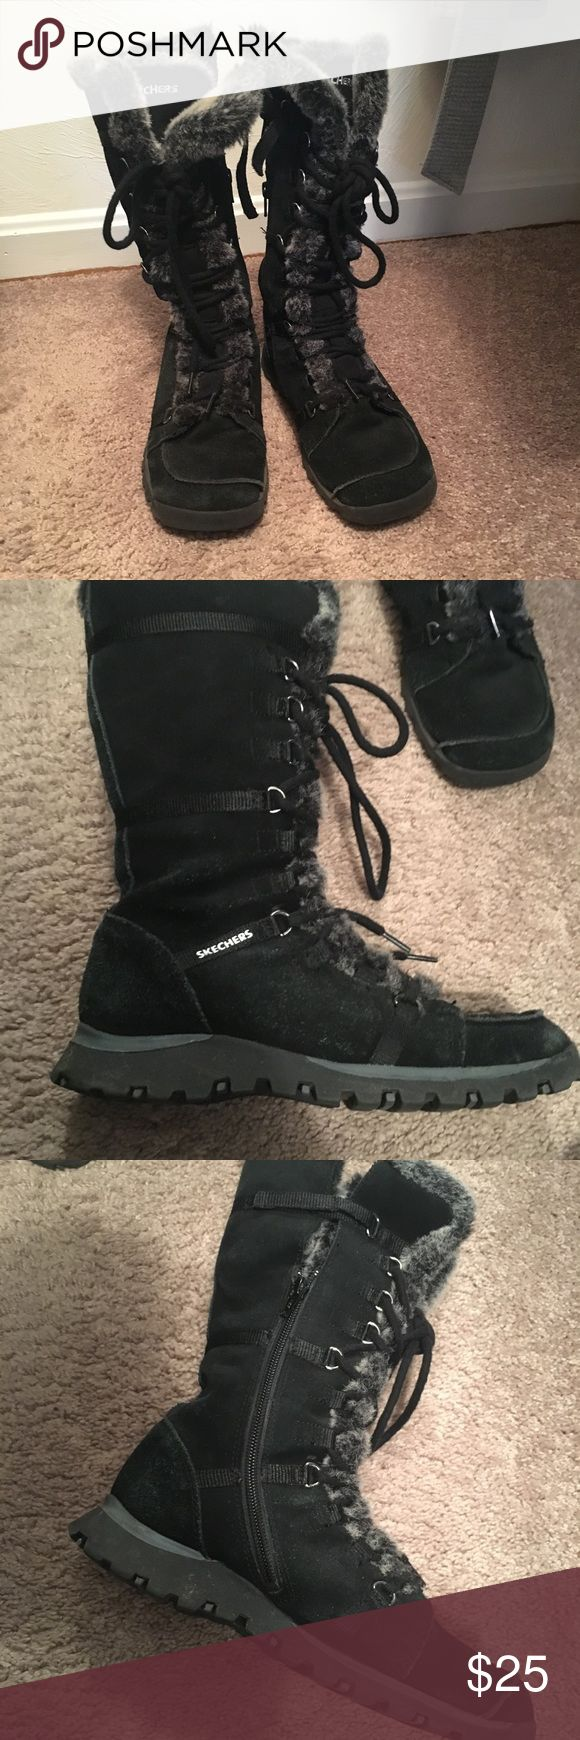 Skechers faux fur lined winter boots Skechers faux fur lined winter boots size 7. Gently worn, in excellent used condition. These boots come up to the calf and look great over a pair of leggings. Skechers Shoes Winter & Rain Boots